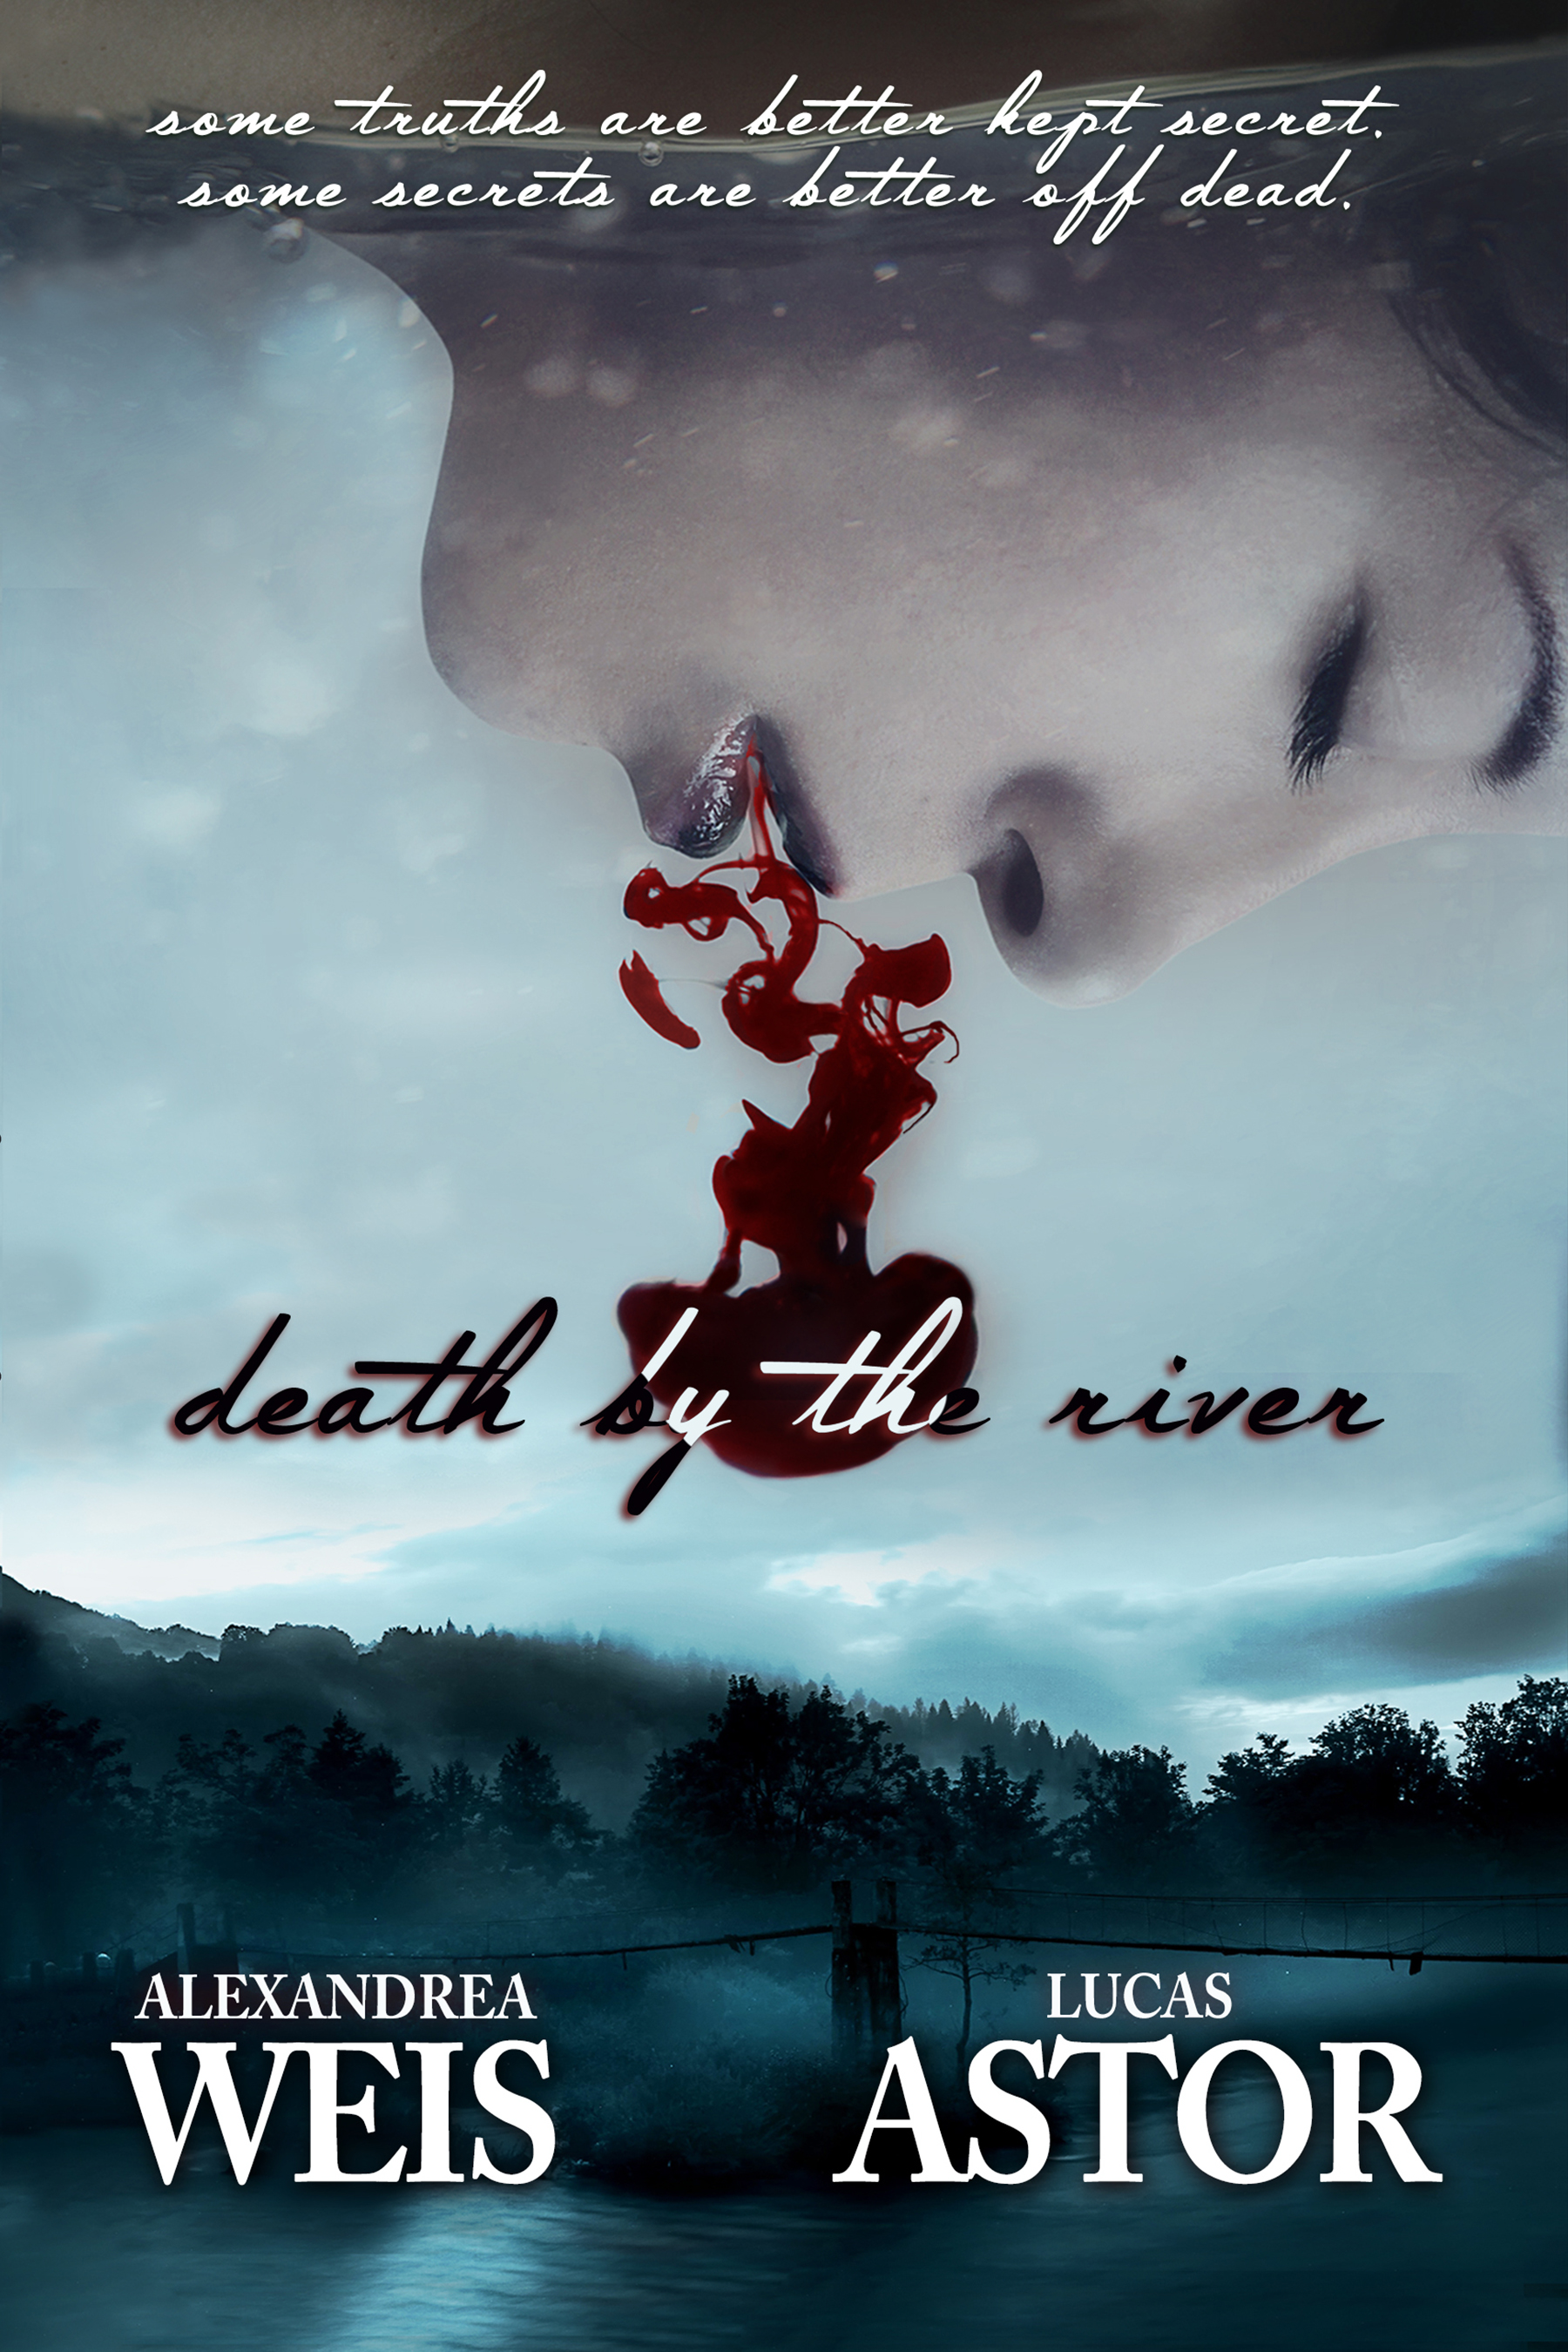 Death by the River by Alexandrea Weis and Lucas Astor